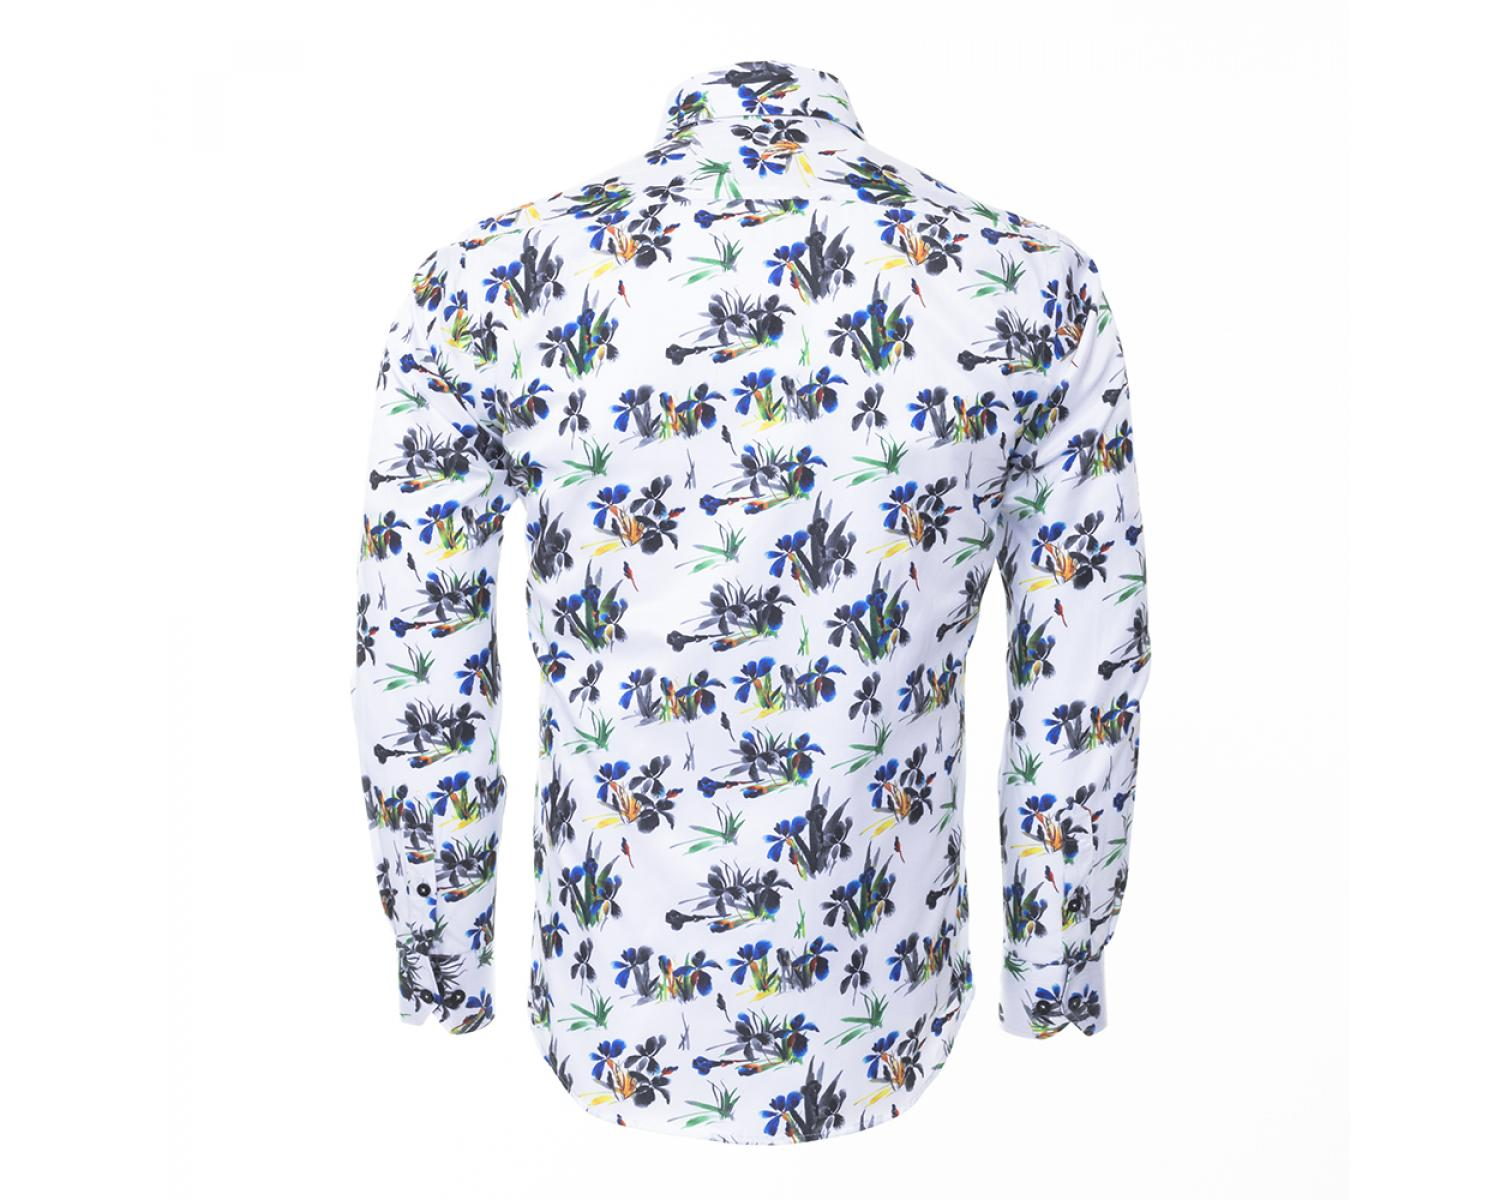 79561679210257 SL 6404 Men's white & blue floral print shirt - Quality Designed Shirts